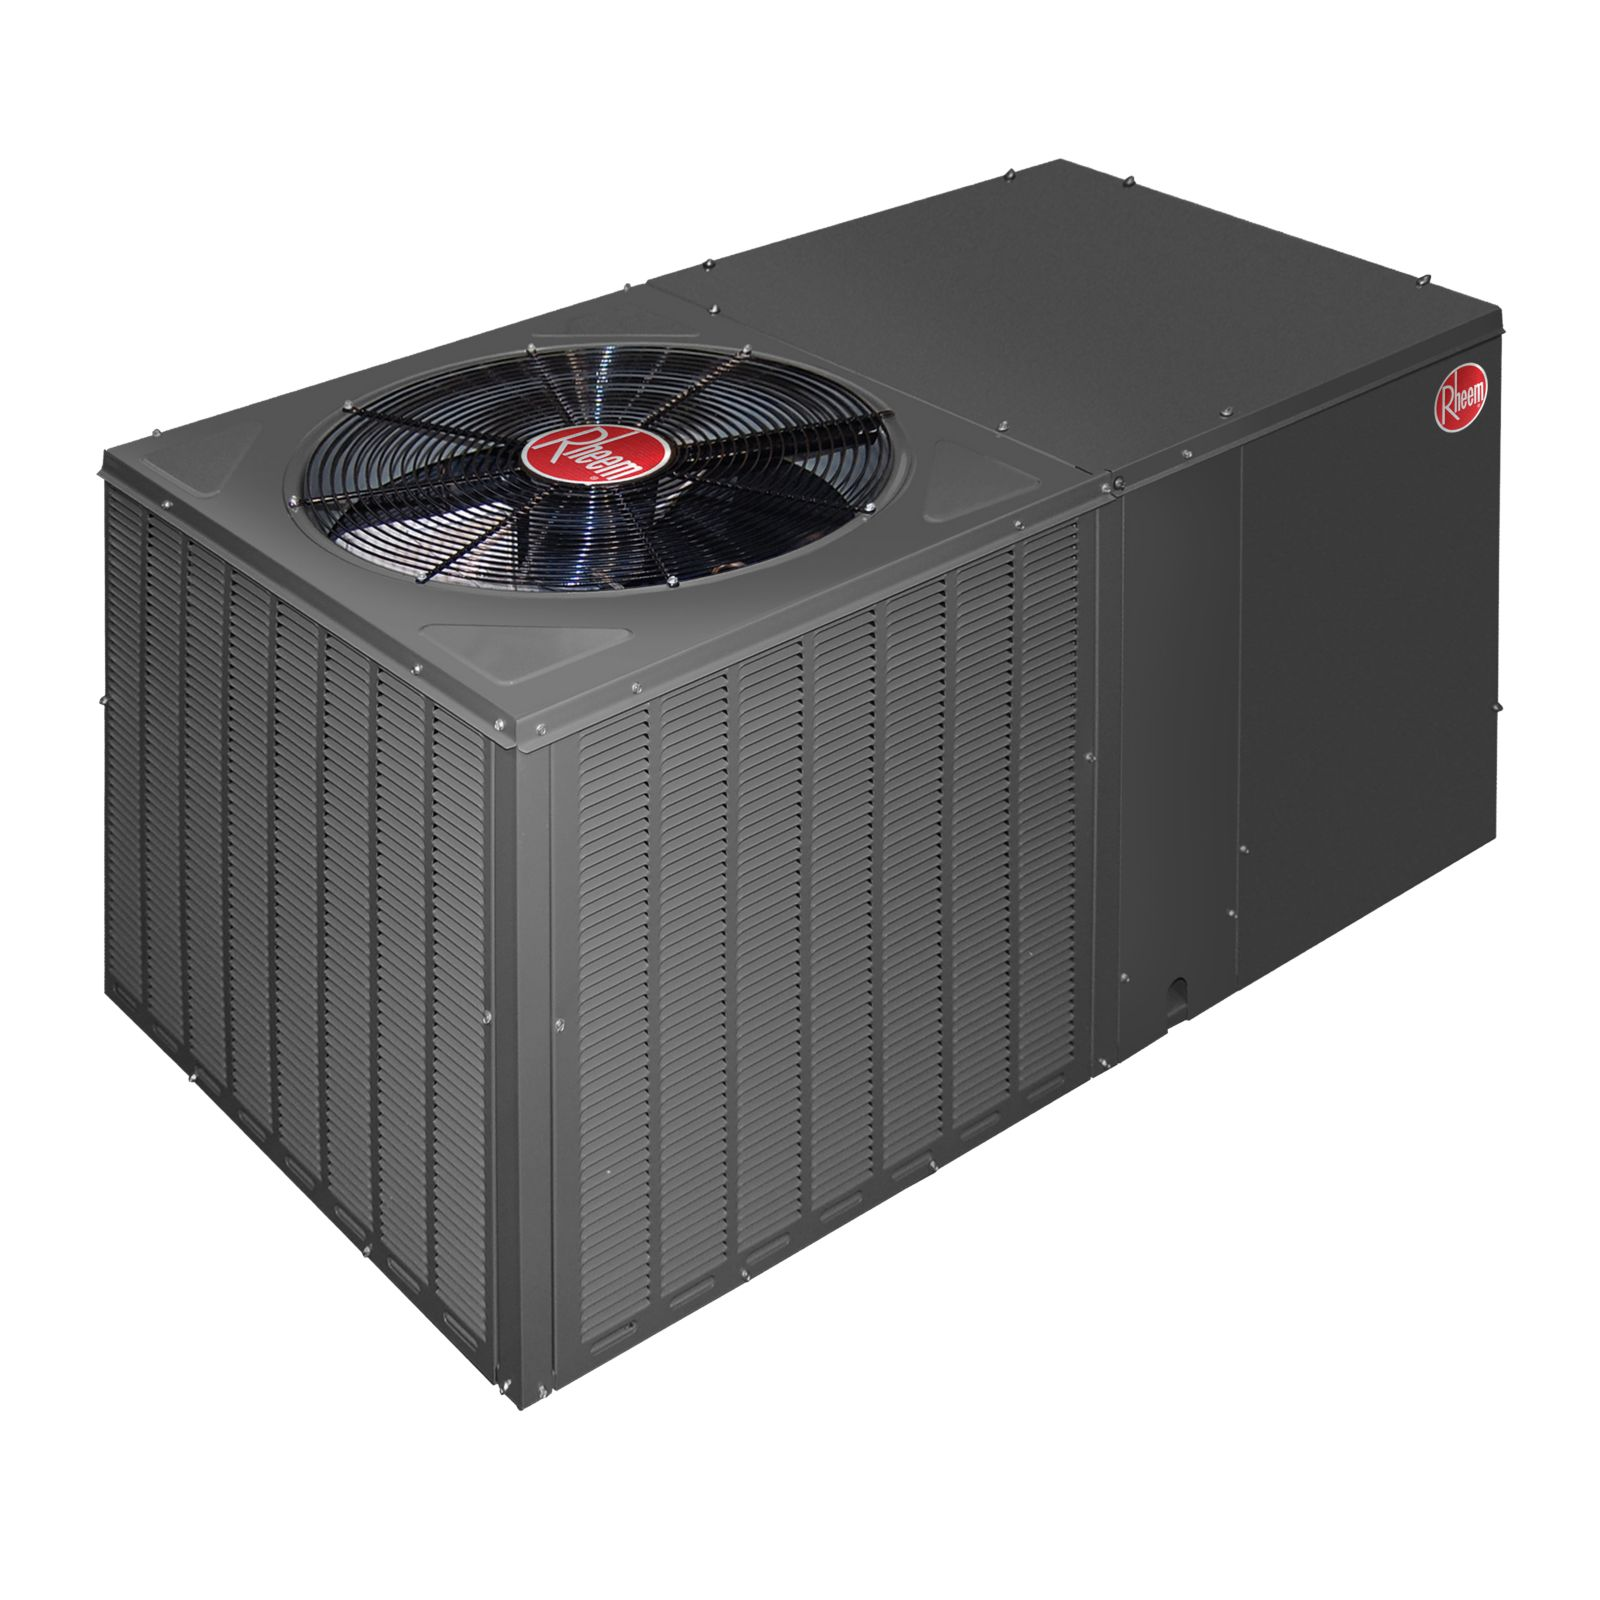 Rheem RQRM-A036JK000 - Classic 3 Ton, 15/16 SEER, R410A, Packaged Heat Pump With Horizontal Discharge, 208-230 V, 1 Ph, 60 Hz